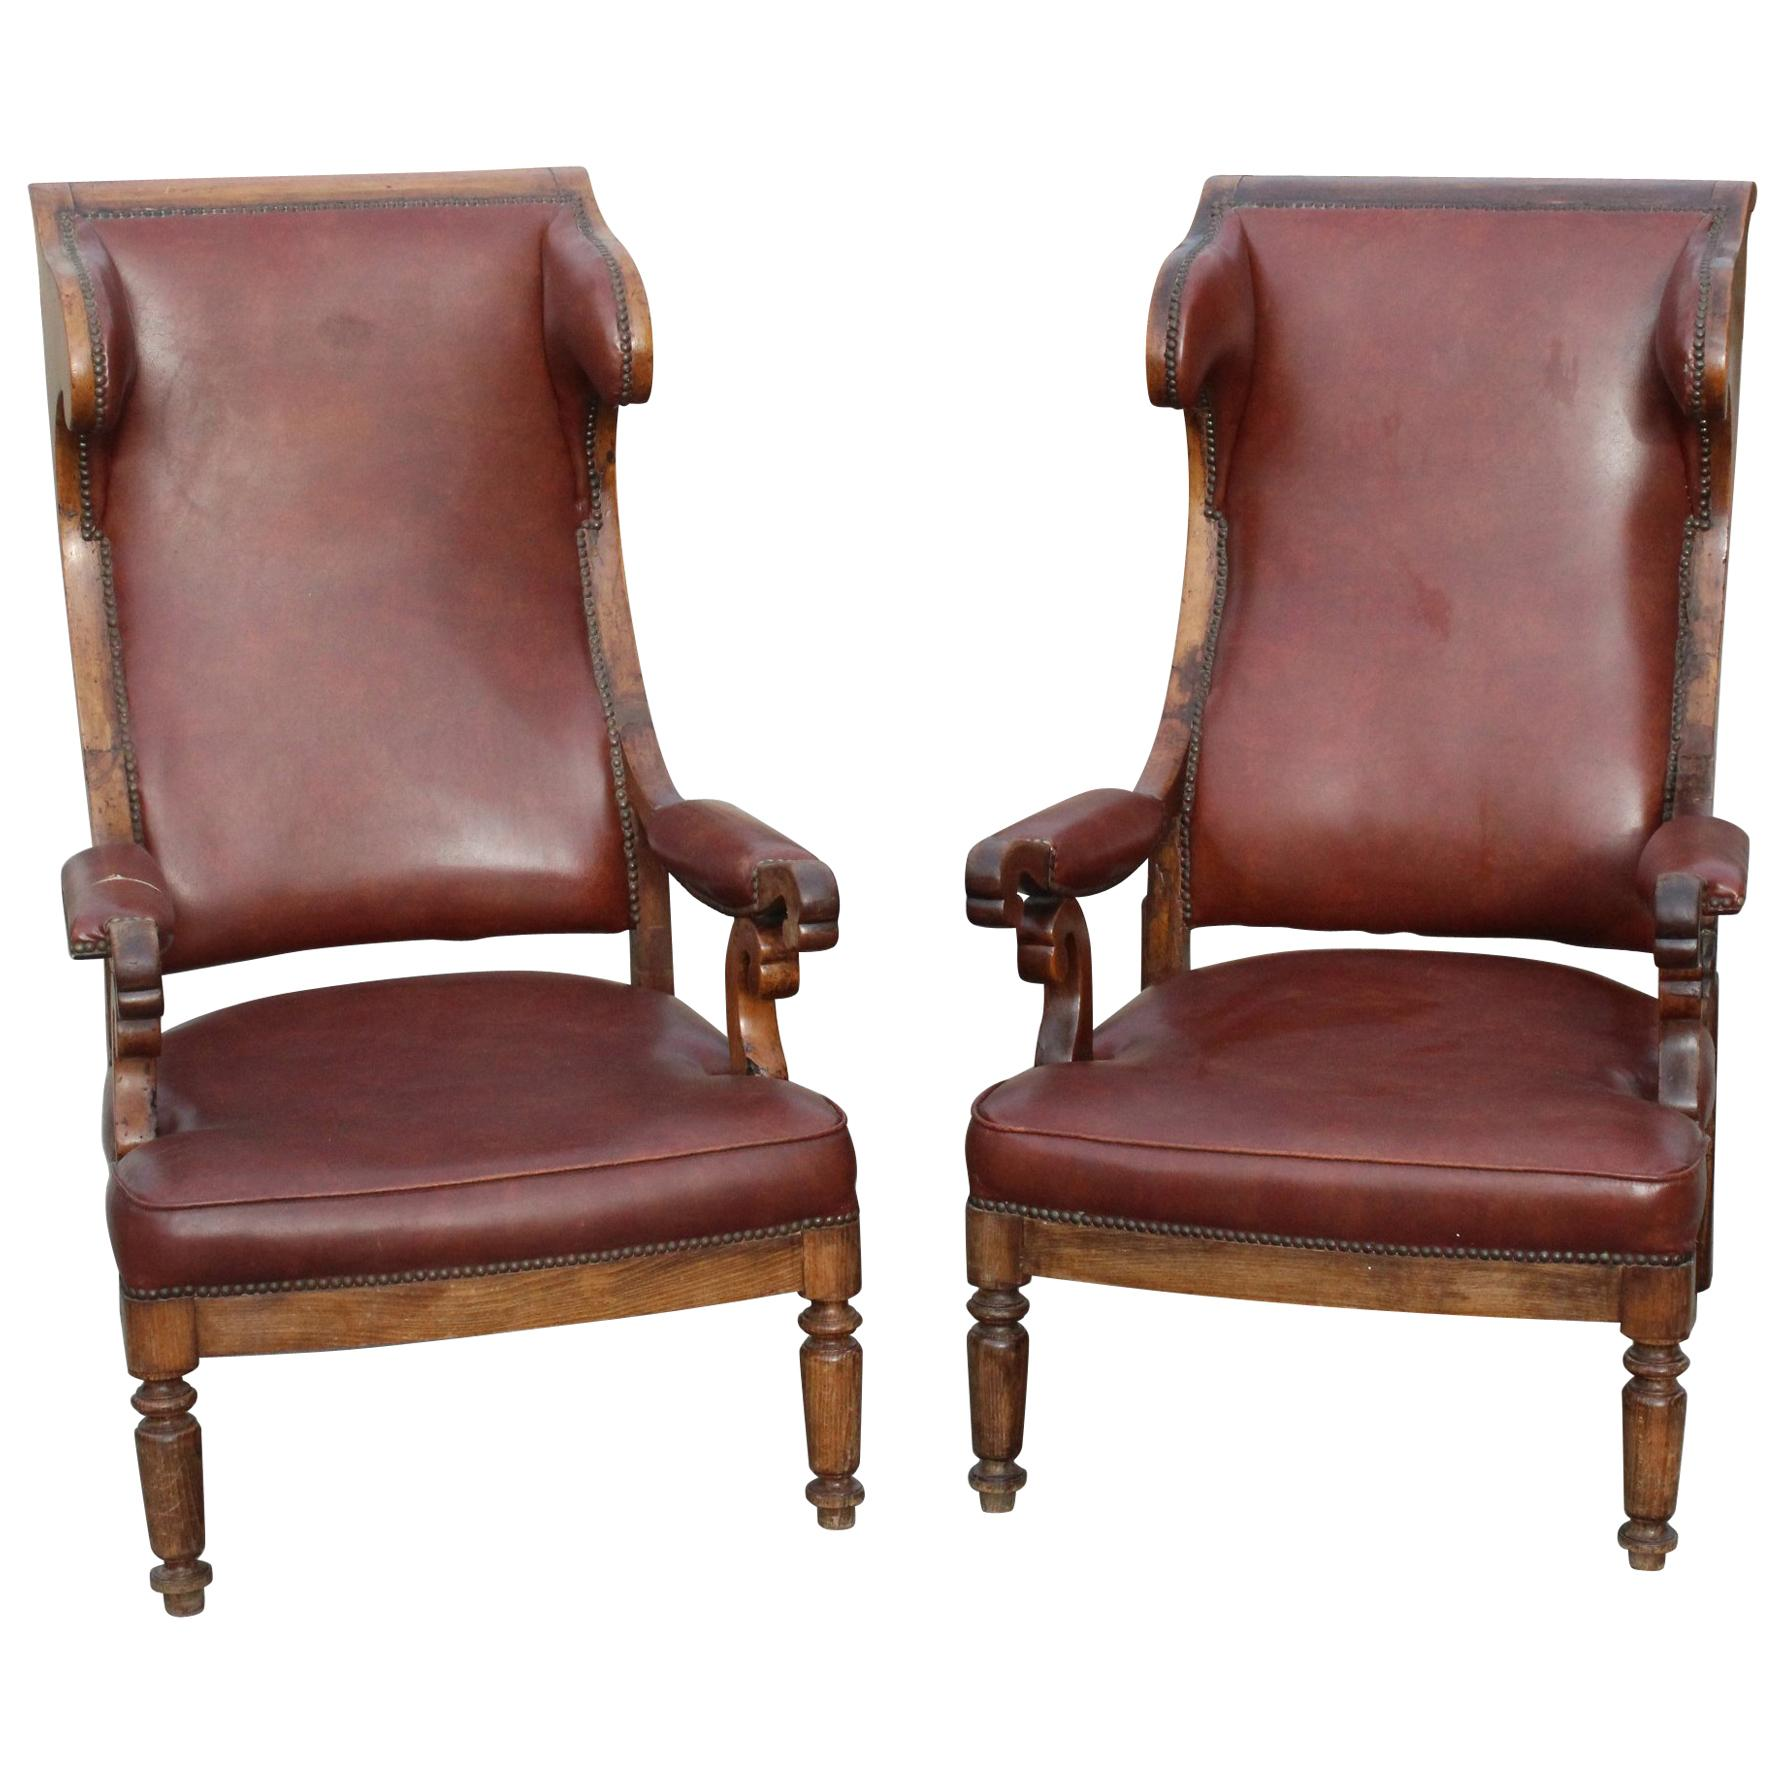 19th Century Pair of French Walnut Leatherette Upholstered Armchairs